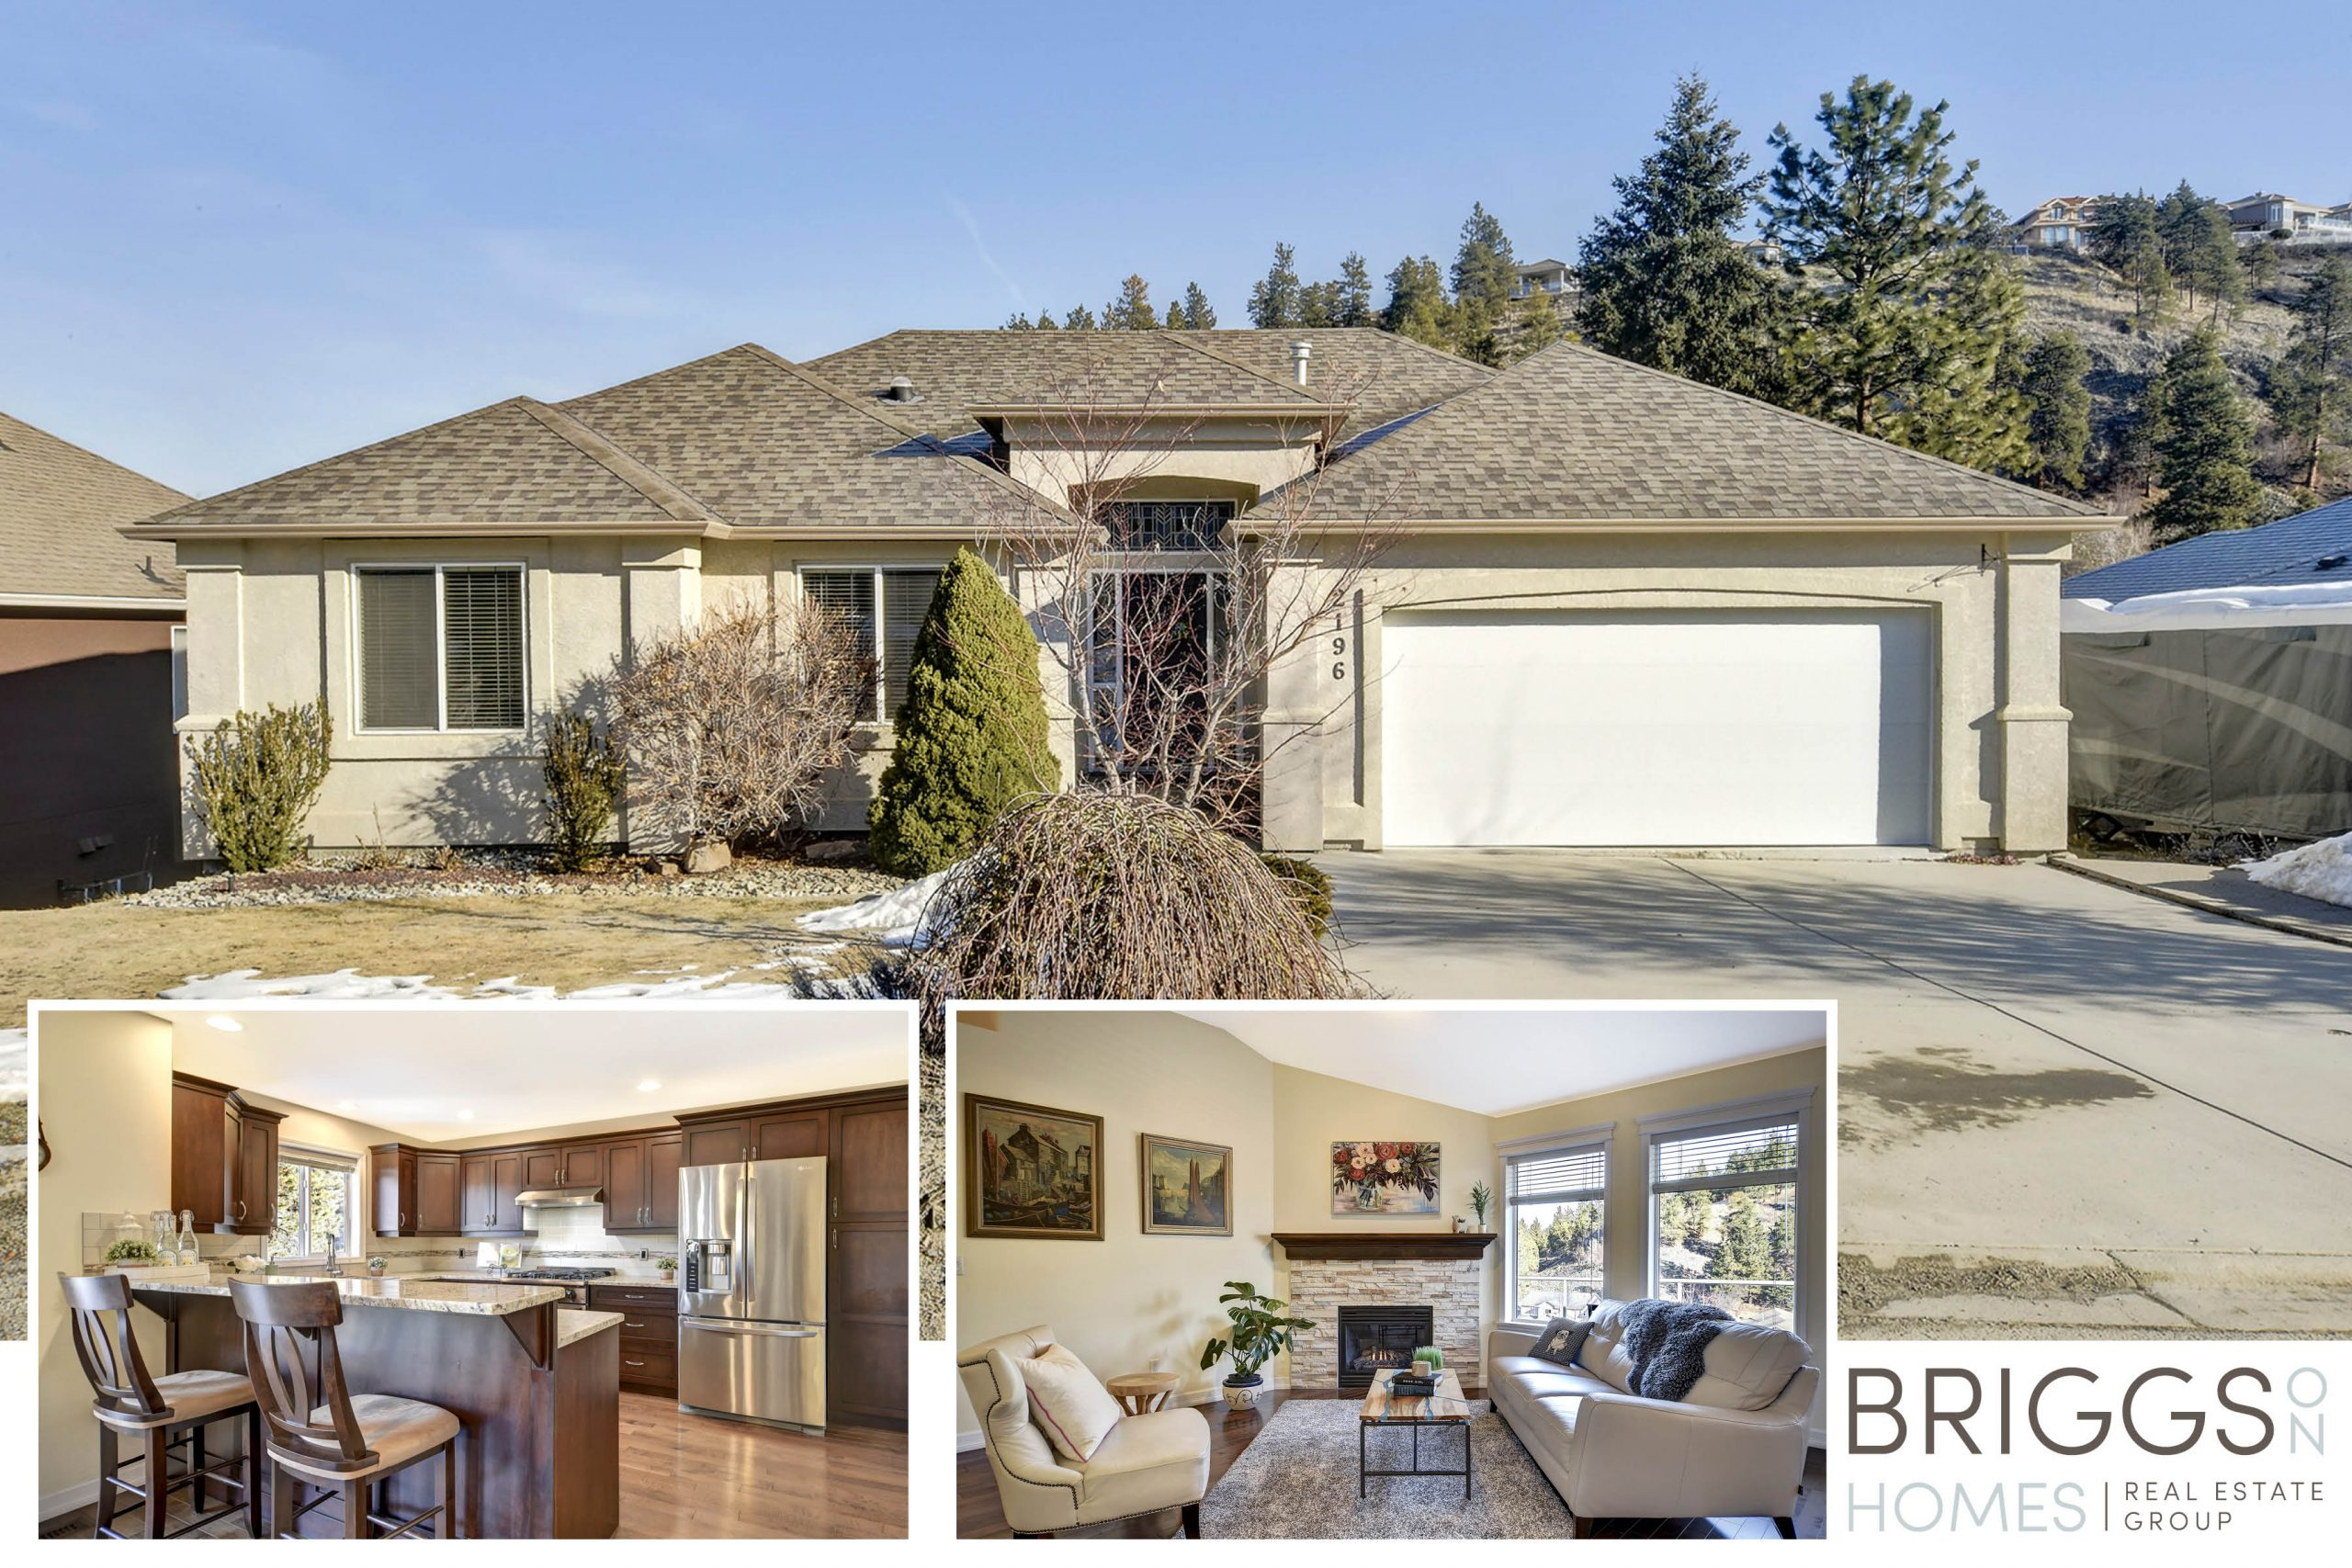 Just SOLD! Dilworth Mountain W/O Rancher